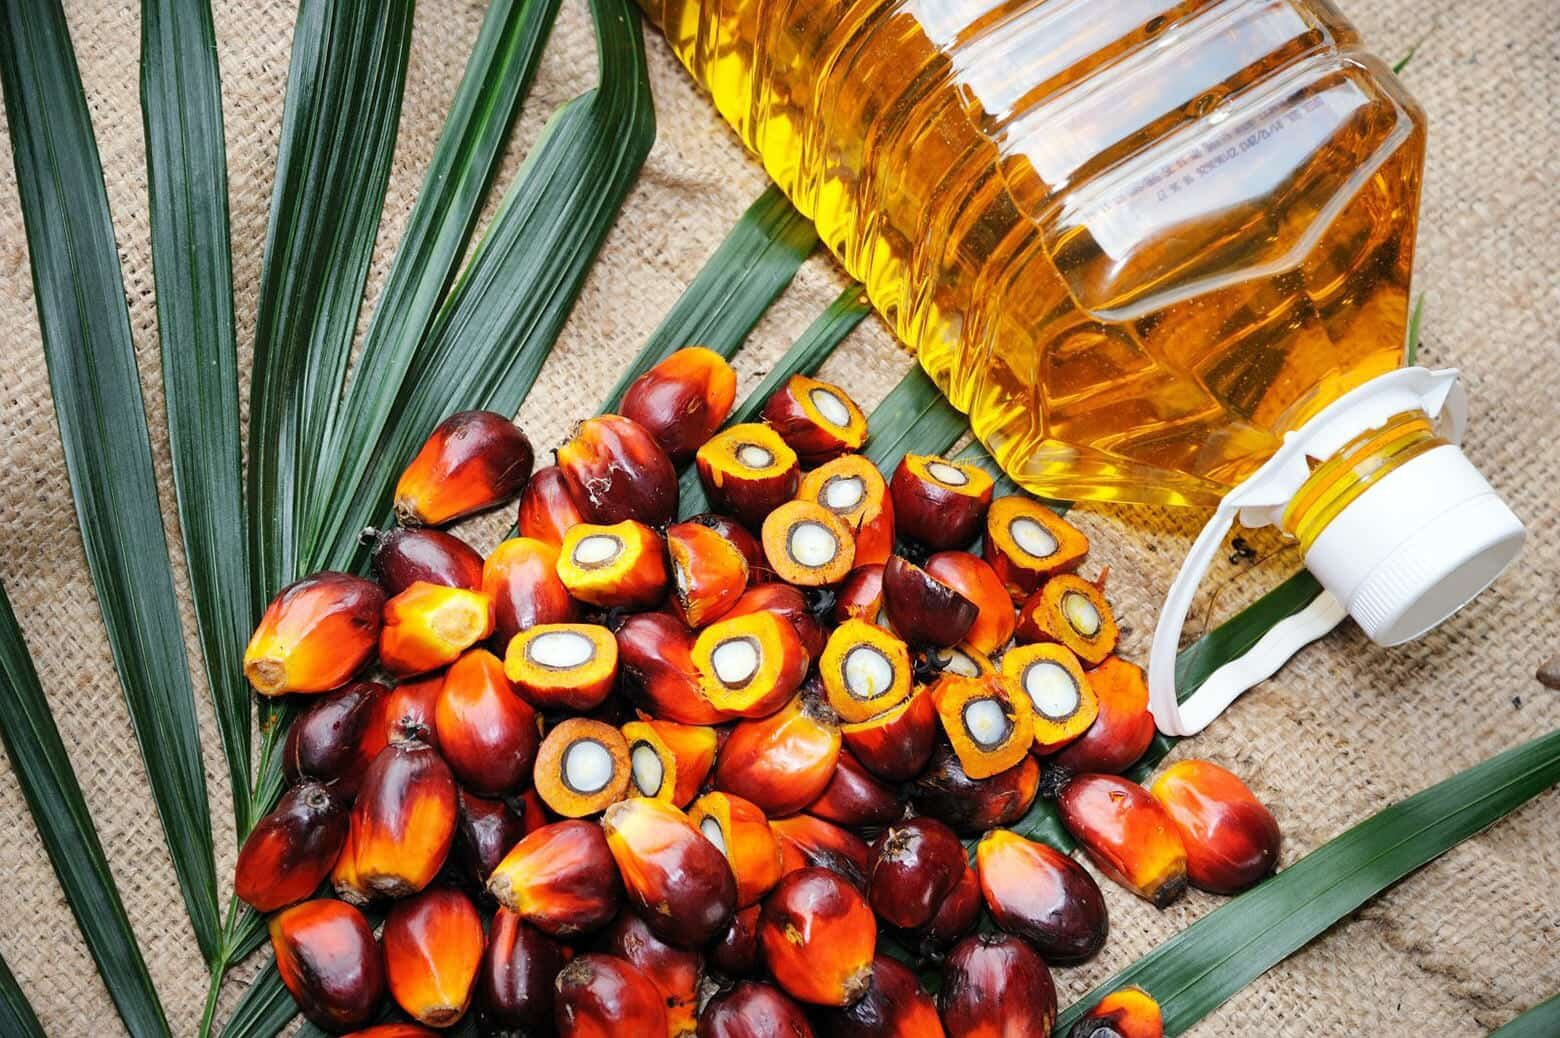 red palm fruits and palm kernel oil